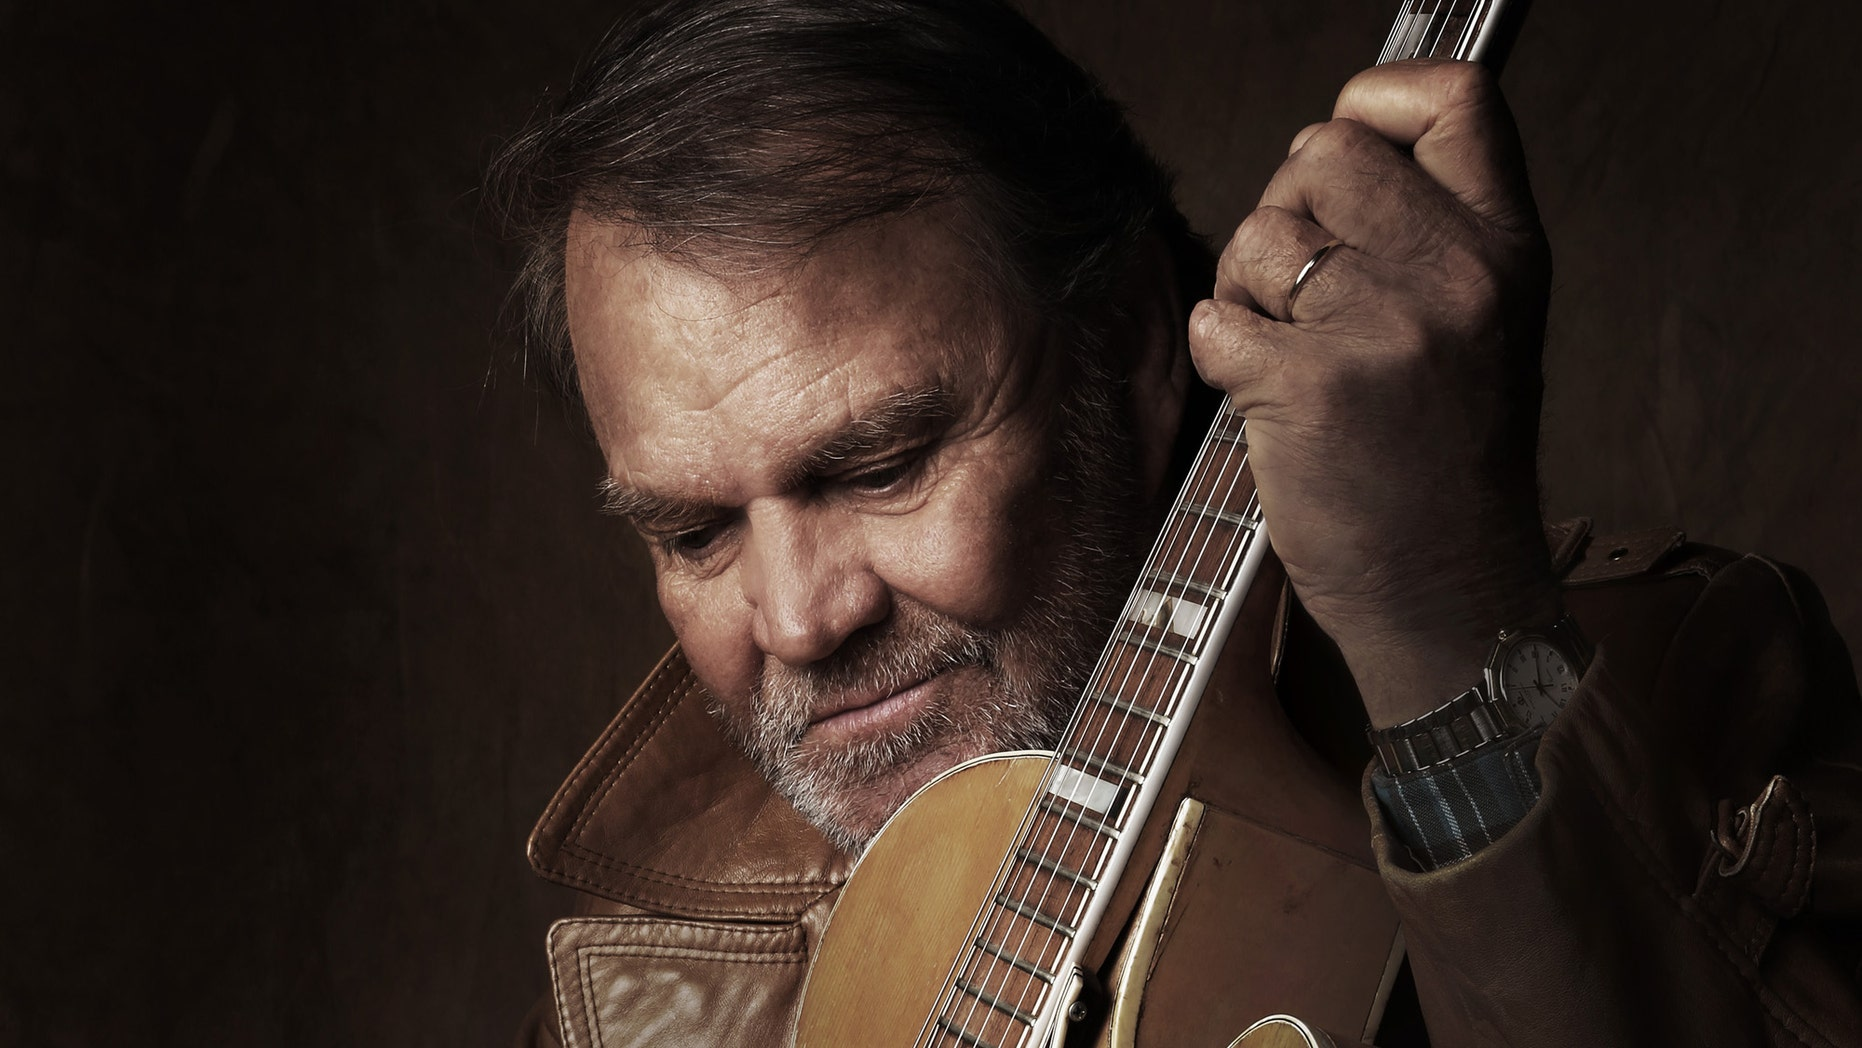 """A portrait of Glen Campbell, during the production of the documentary film, """"Glen Campbell... I'll Be Me"""" directed by James Keach. The film is nominated for two Oscars: documentary feature and original song."""